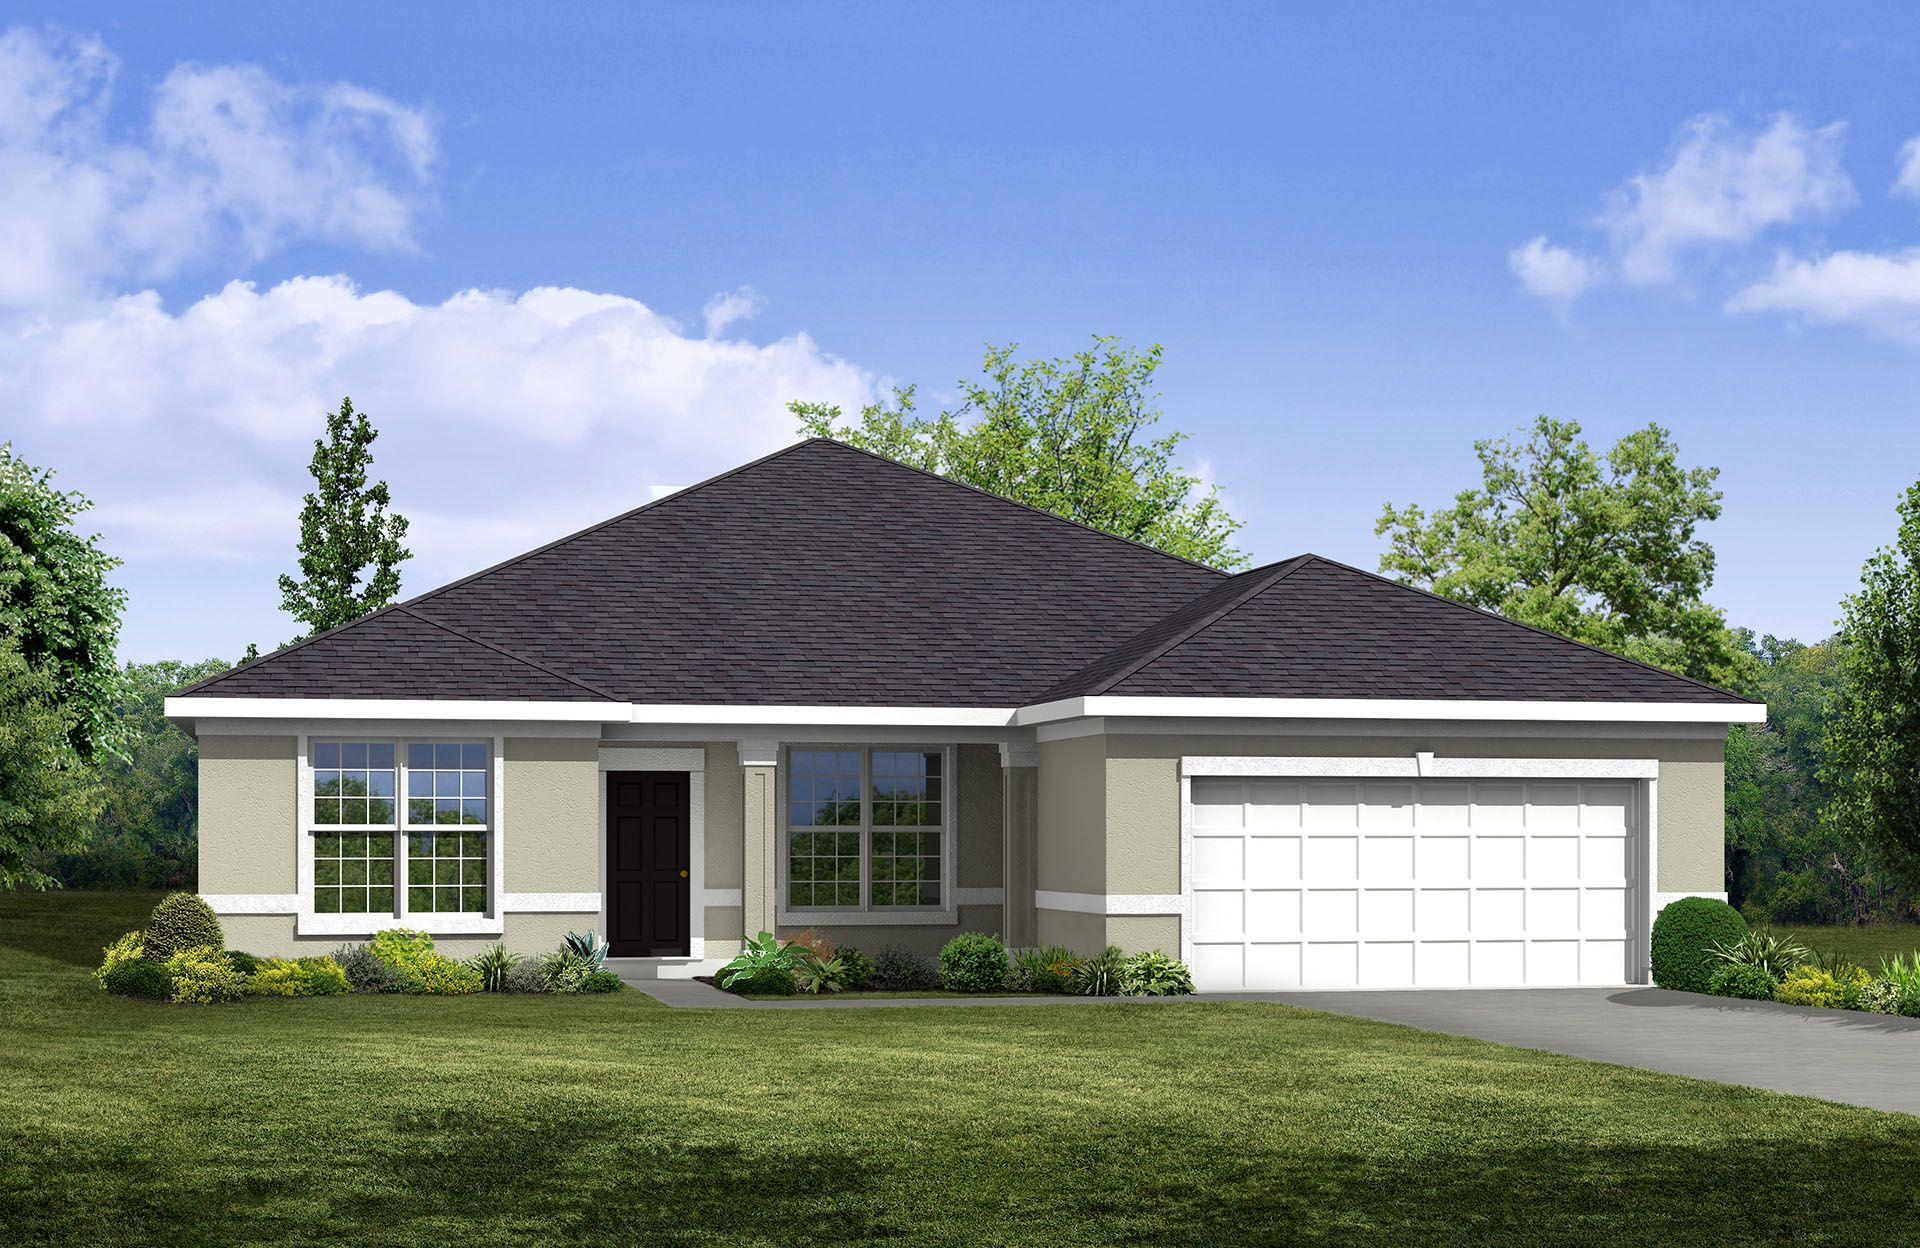 Ortega - Rolling Meadows: Macclenny, FL - Drees Homes